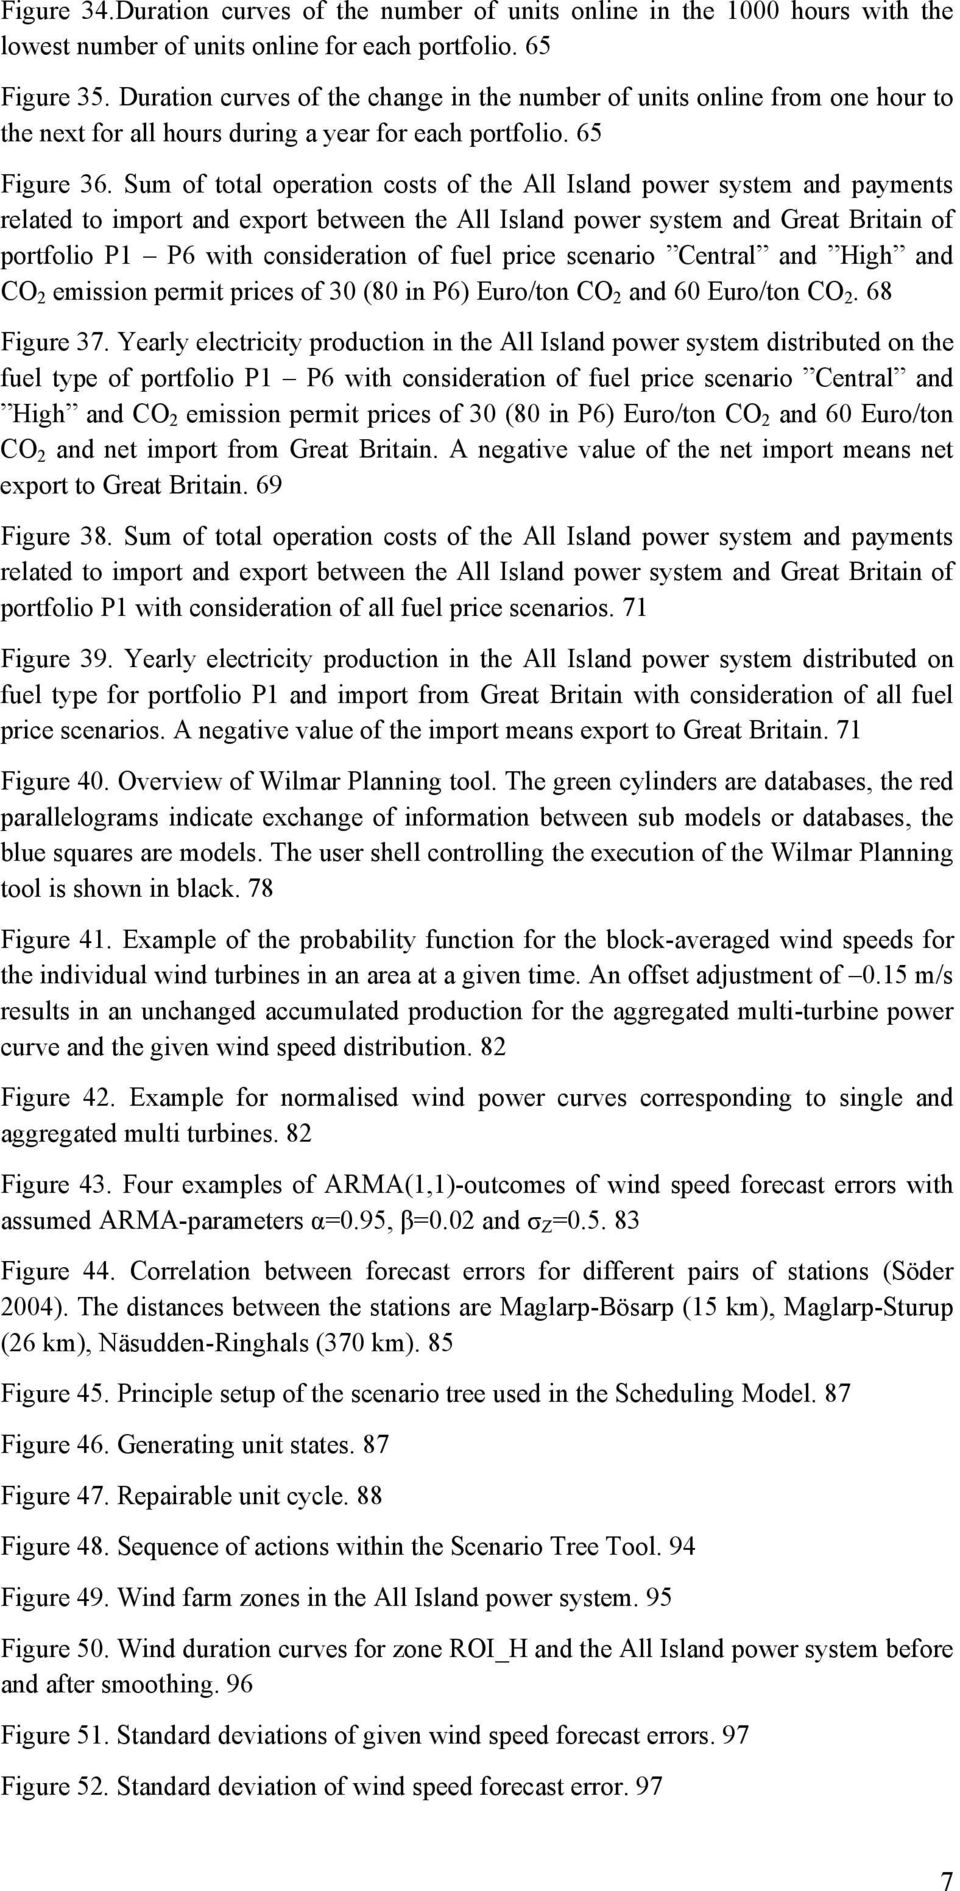 Sum of total operation costs of the All Island power system and payments related to import and export between the All Island power system and Great Britain of portfolio P1 P6 with consideration of